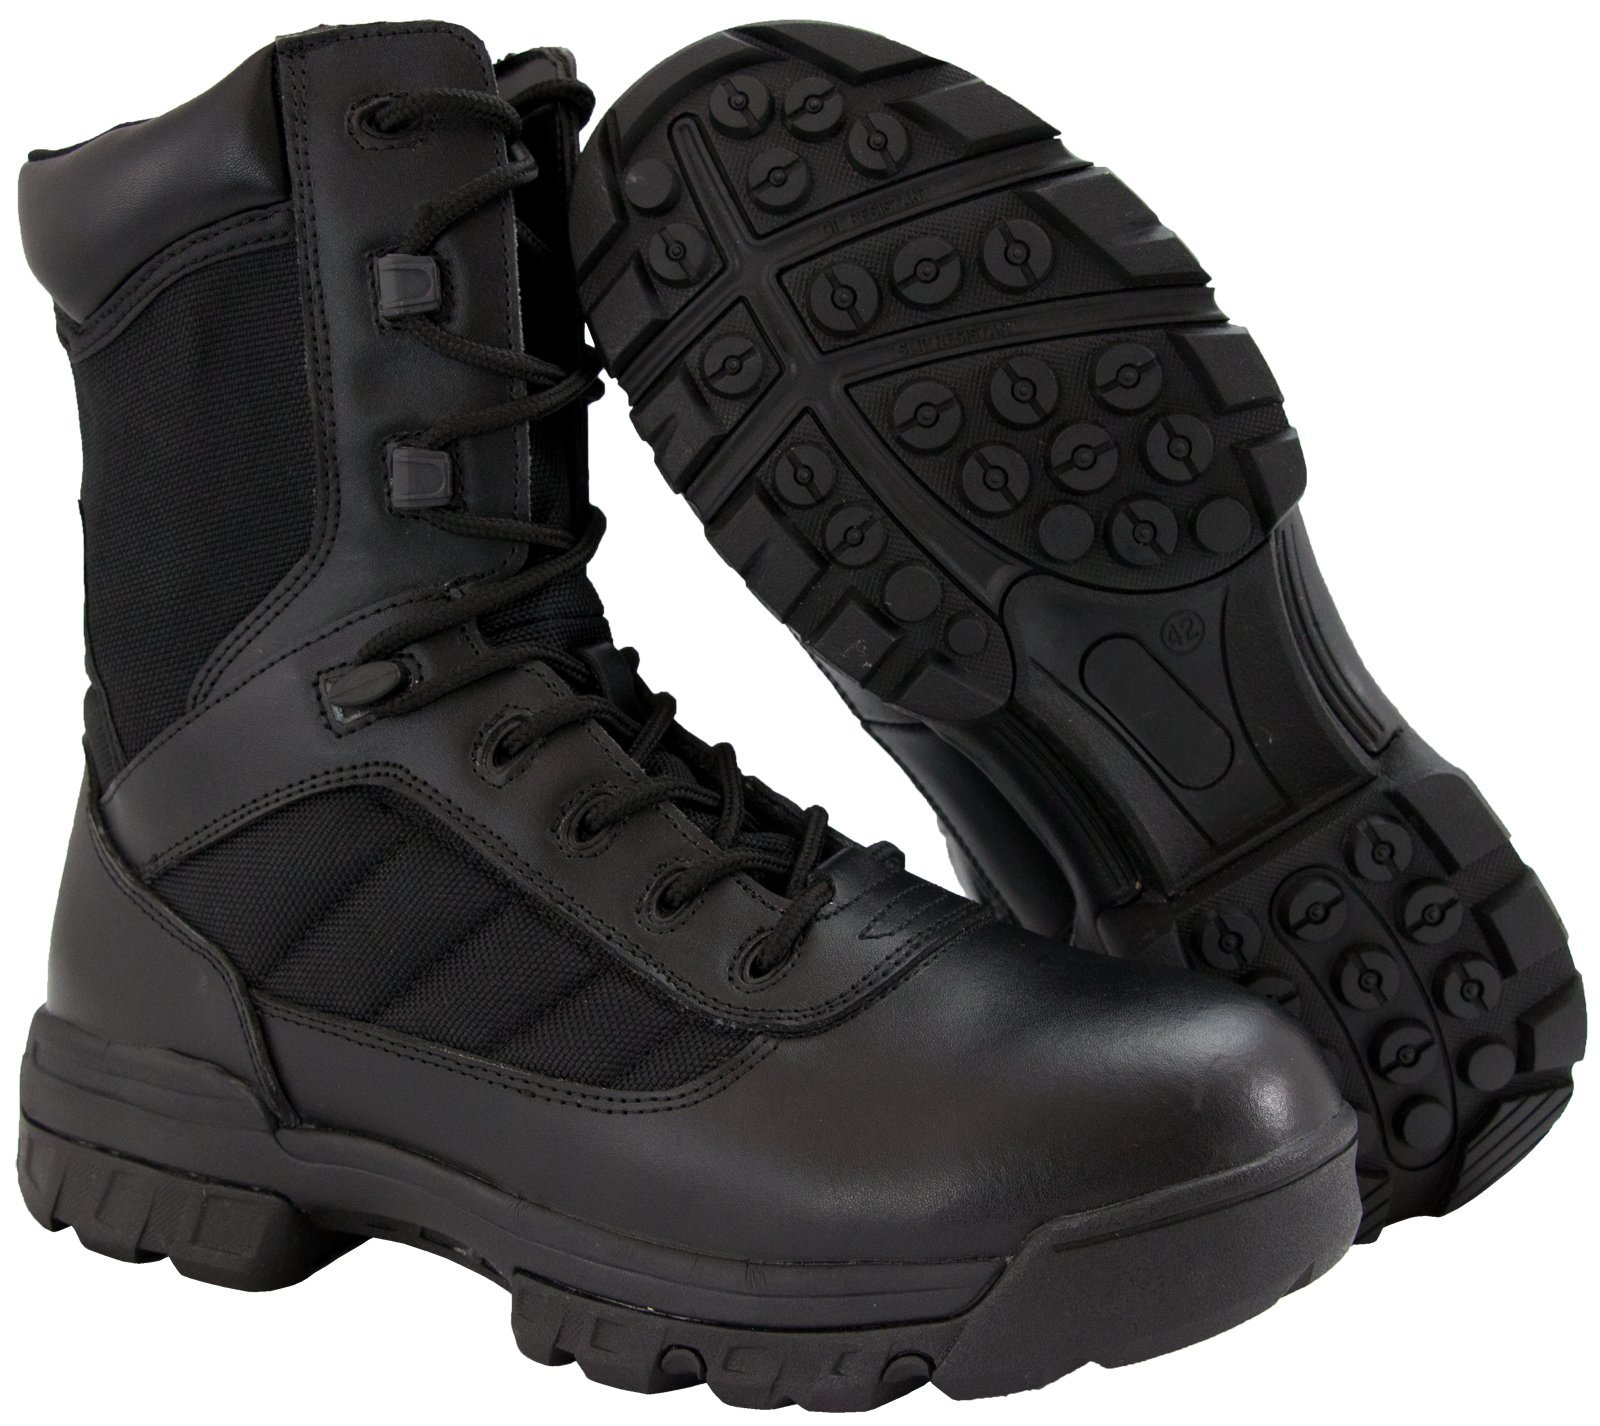 8'' Ryno Gear Tactical Combat Boots with CoolMax Lining (Black) (11)